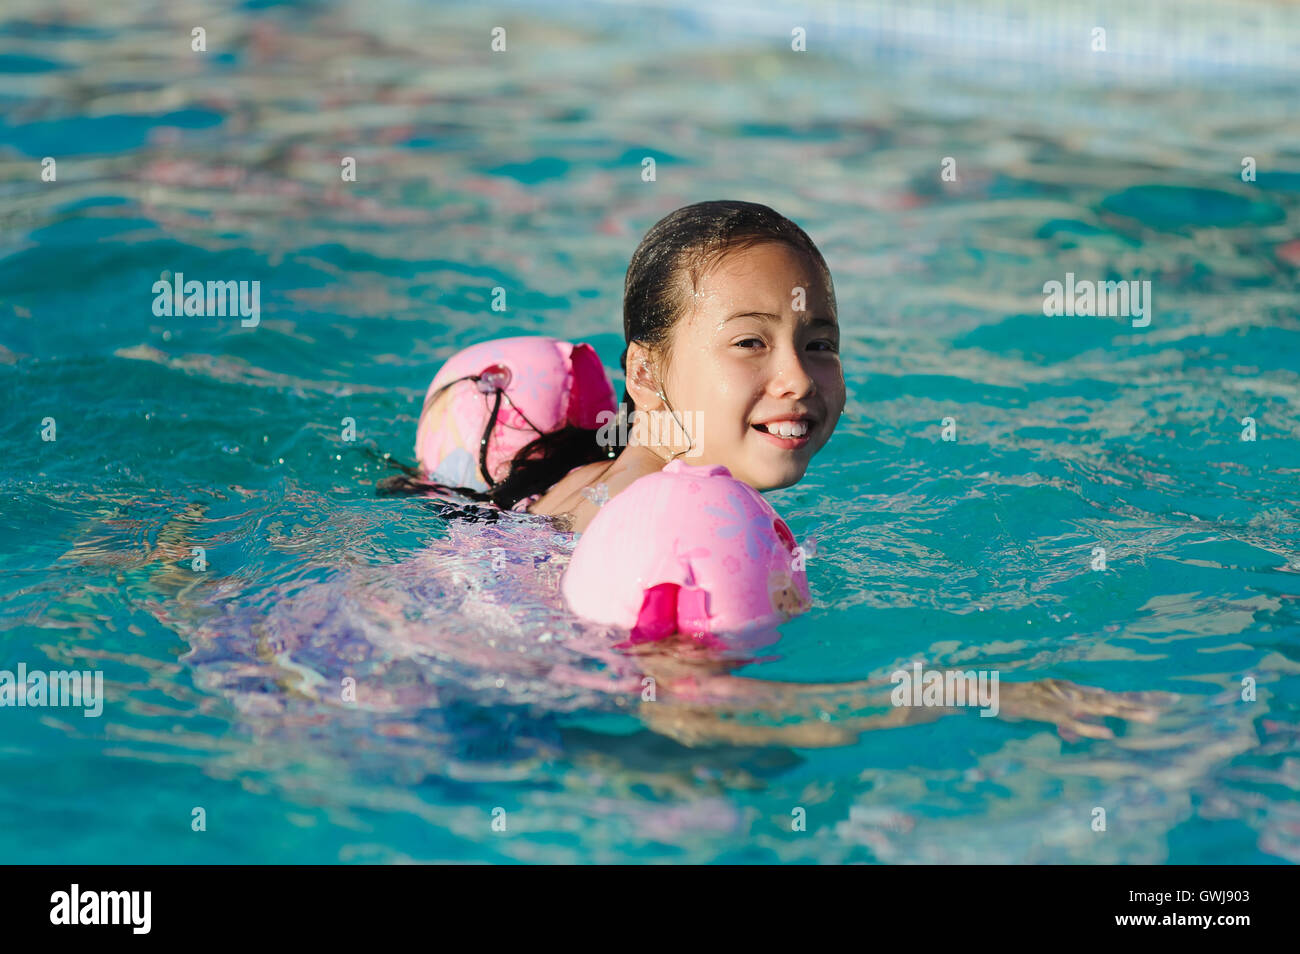 Swimming Pool Wings : Child with water wings in swimming pool stock photo